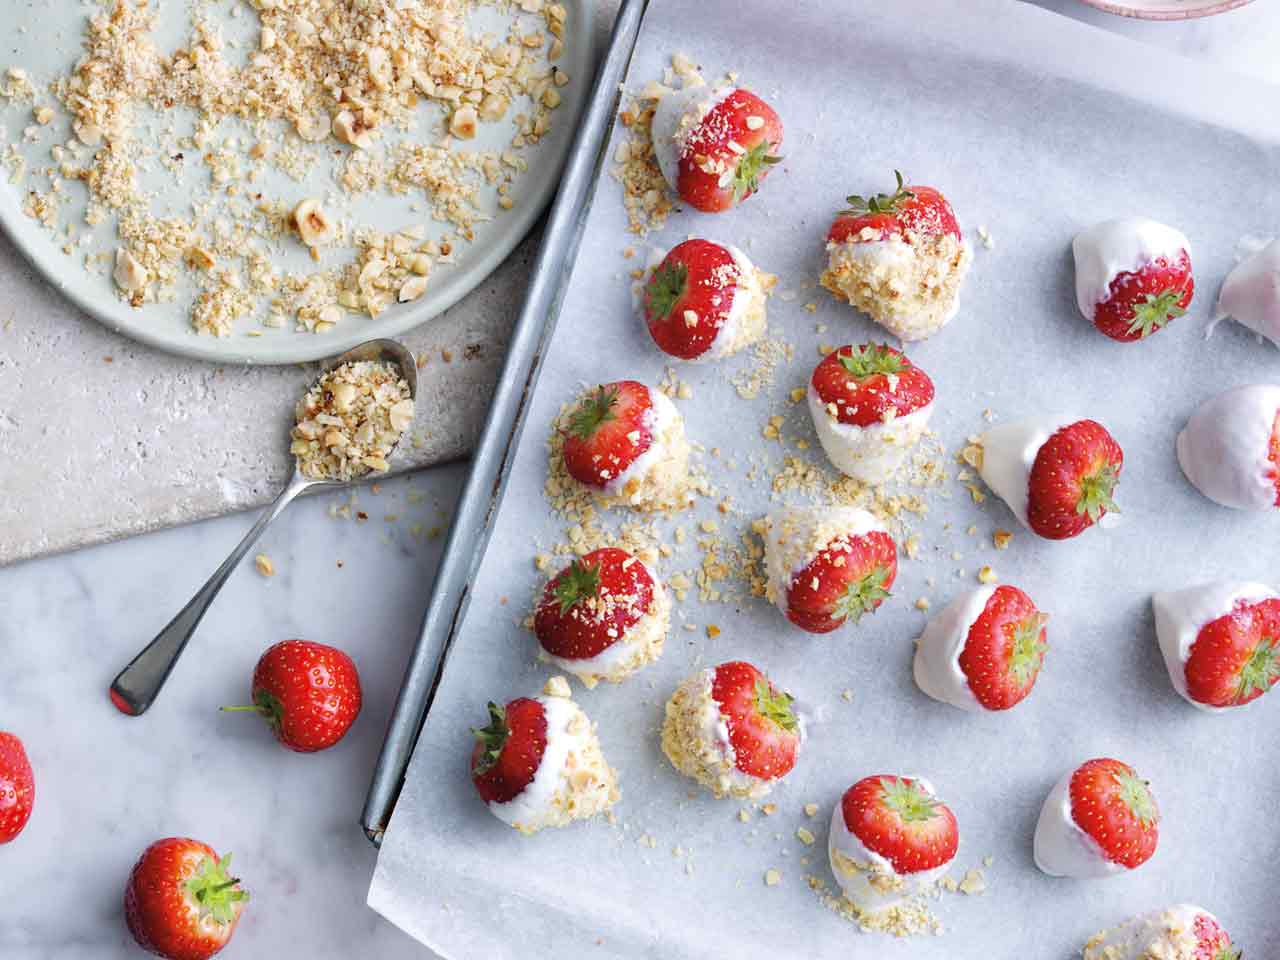 Strawberries dipped in yoghurt and hazelnuts